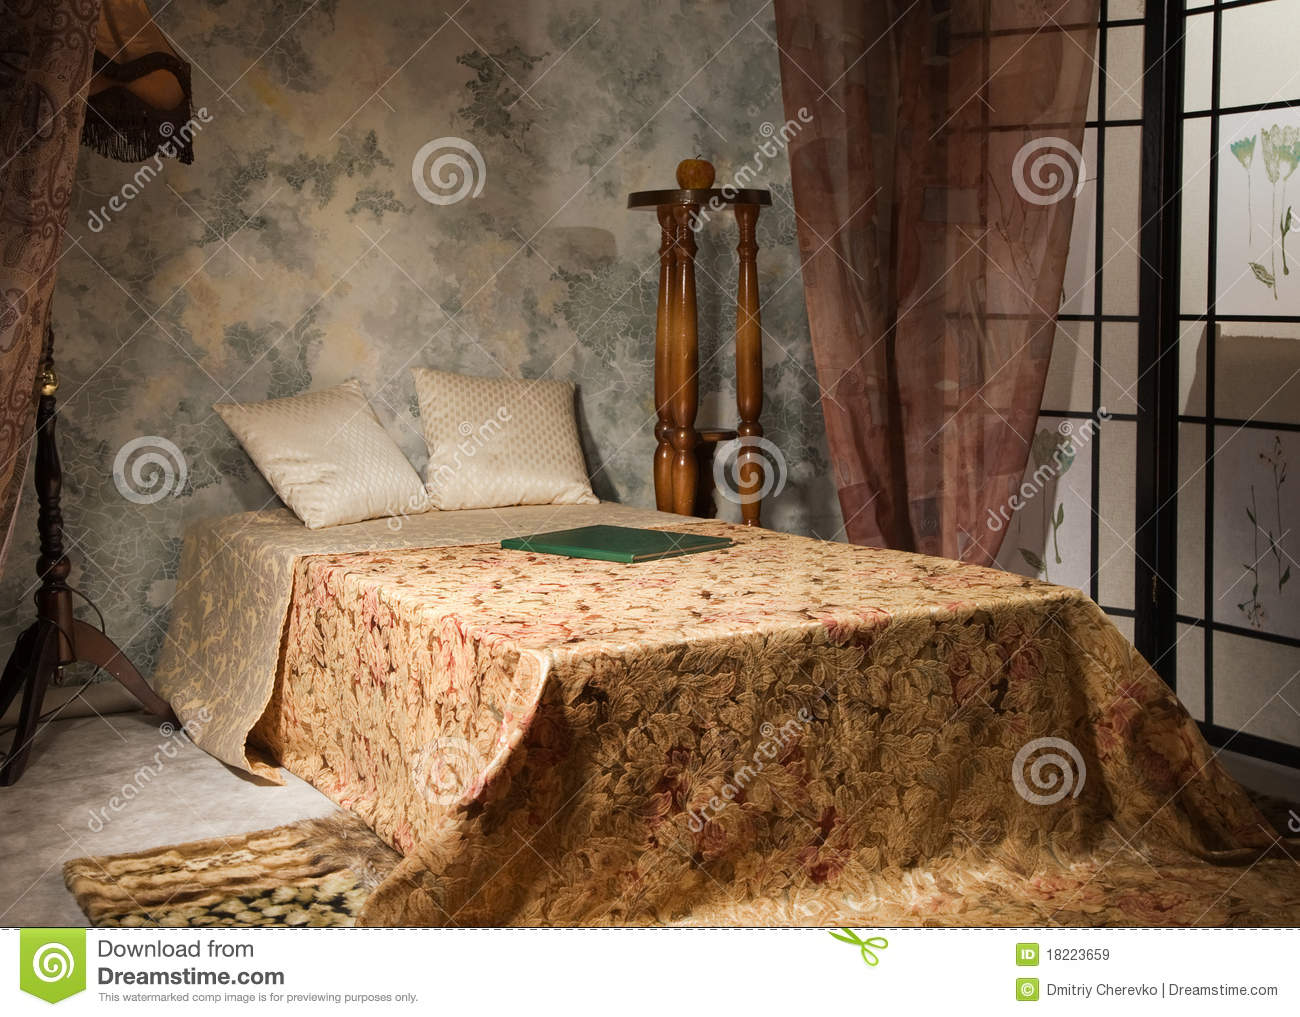 Bedroom interior in the vintage style royalty free stock